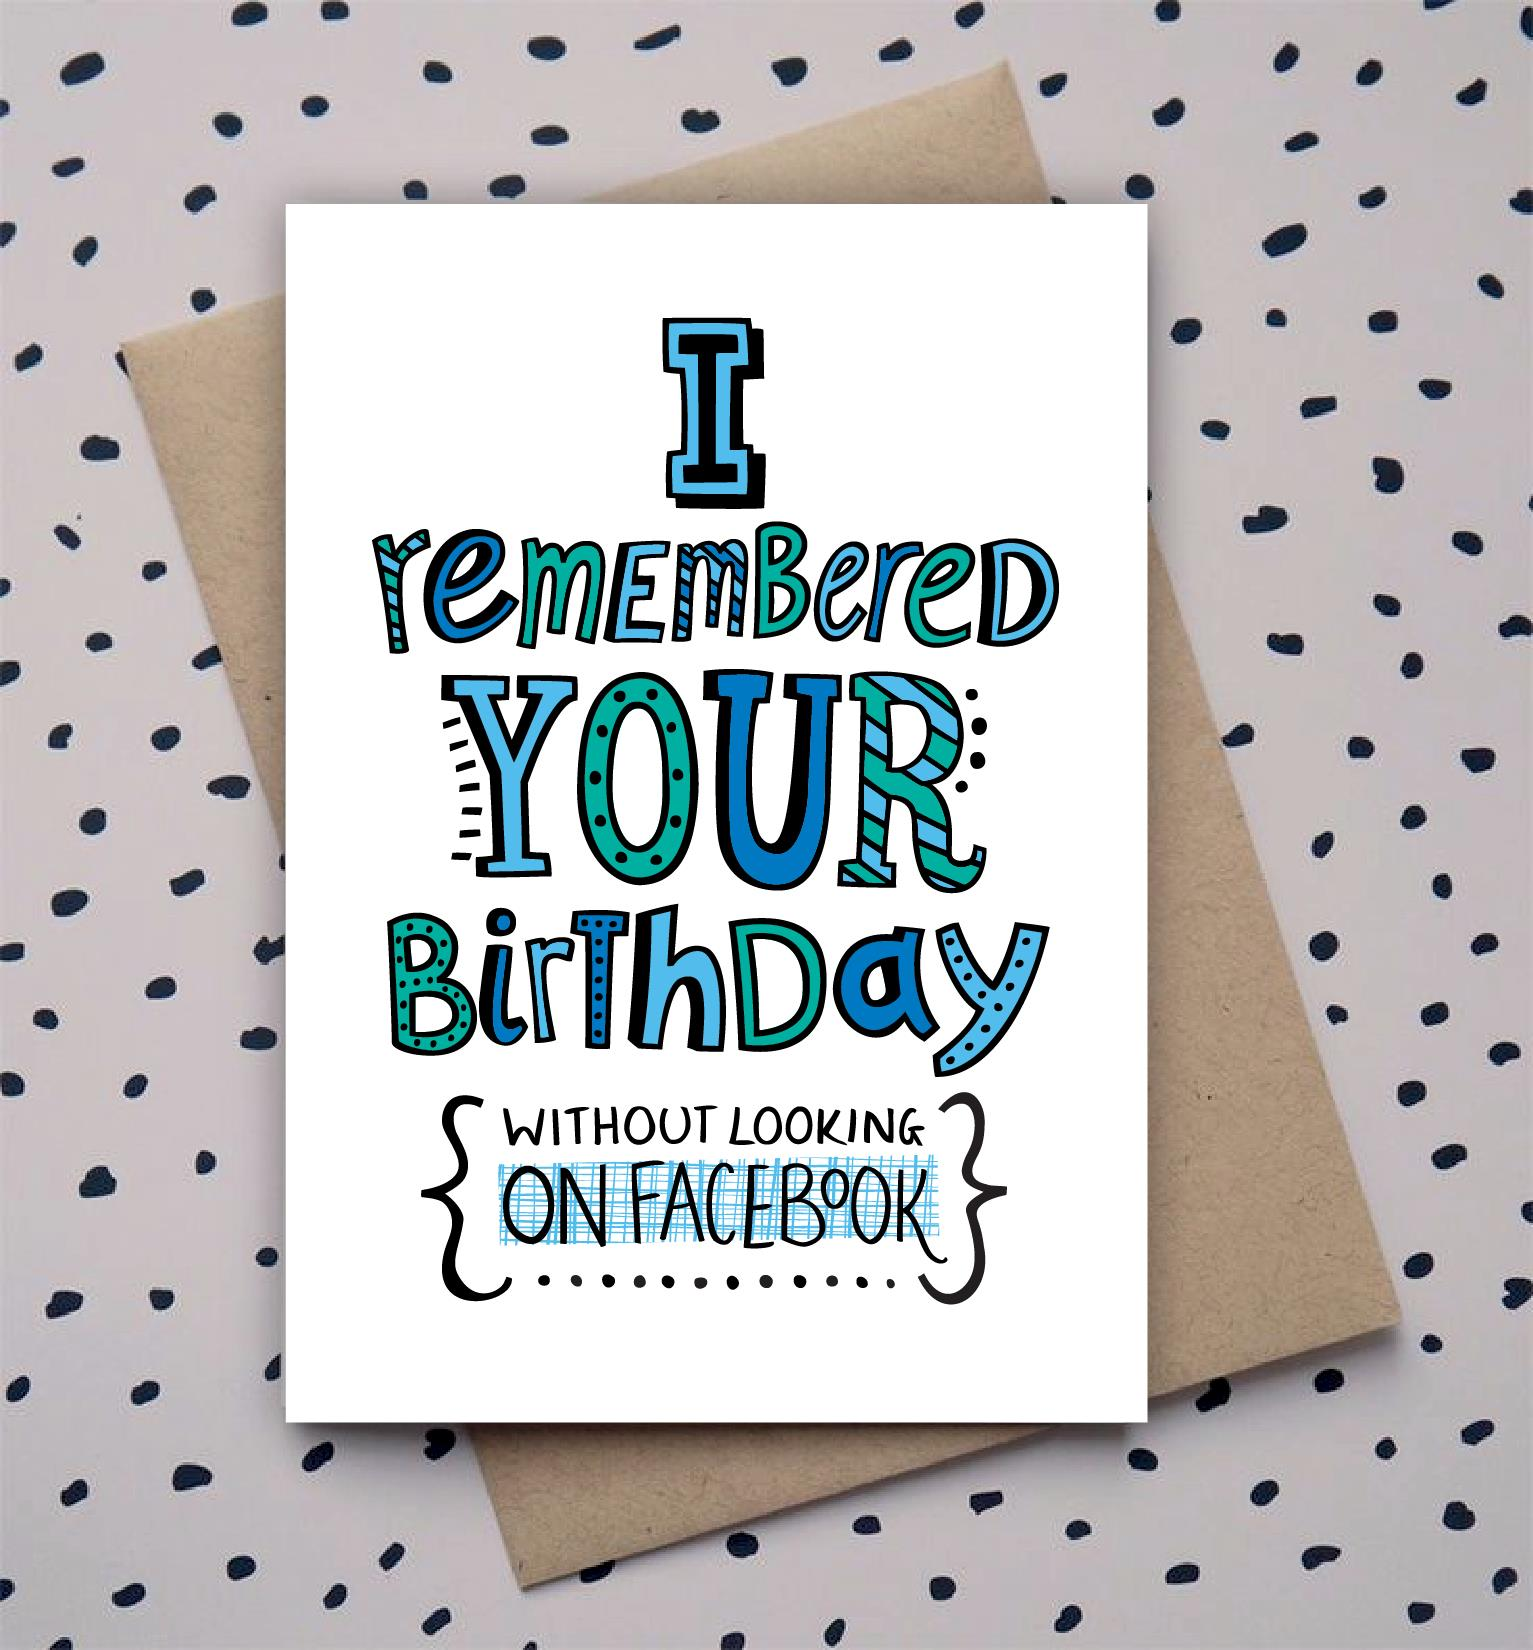 good drawings for birthday cards ; 46d922b56f3c735445518048ad4ddeca